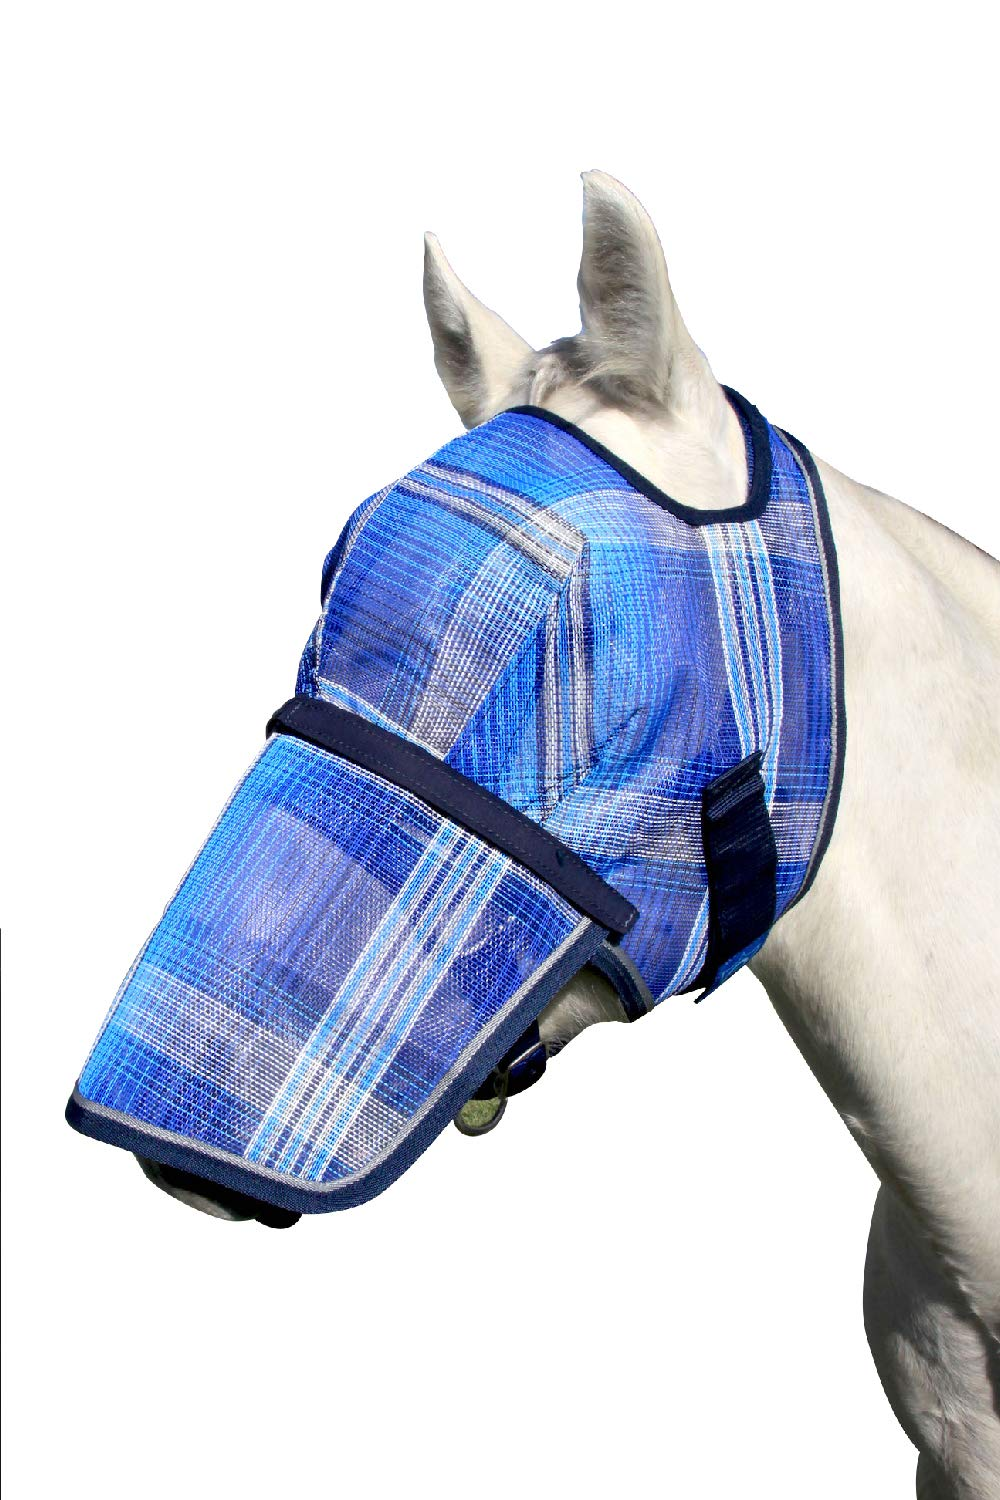 Kensington Signature Removable Nose Fly Mask - Protects Horses Face Nose from Insects, UV Rays, While Allowing Full Visibility - Ears Forelock Able to Come Through The Mask (M, Kentucky Blue)